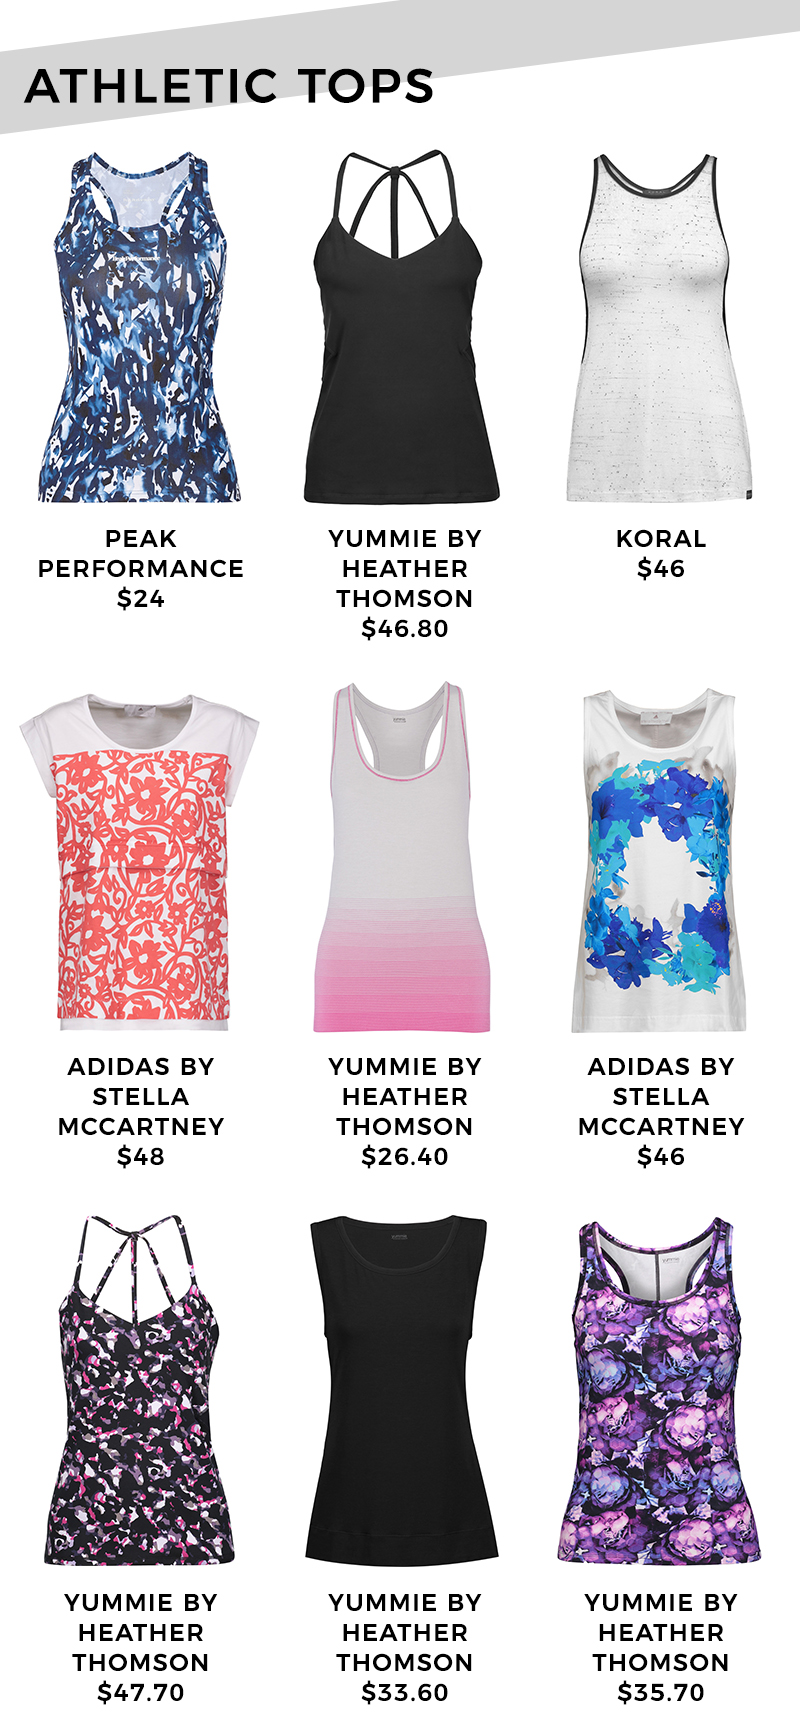 Athletic tops under $50.